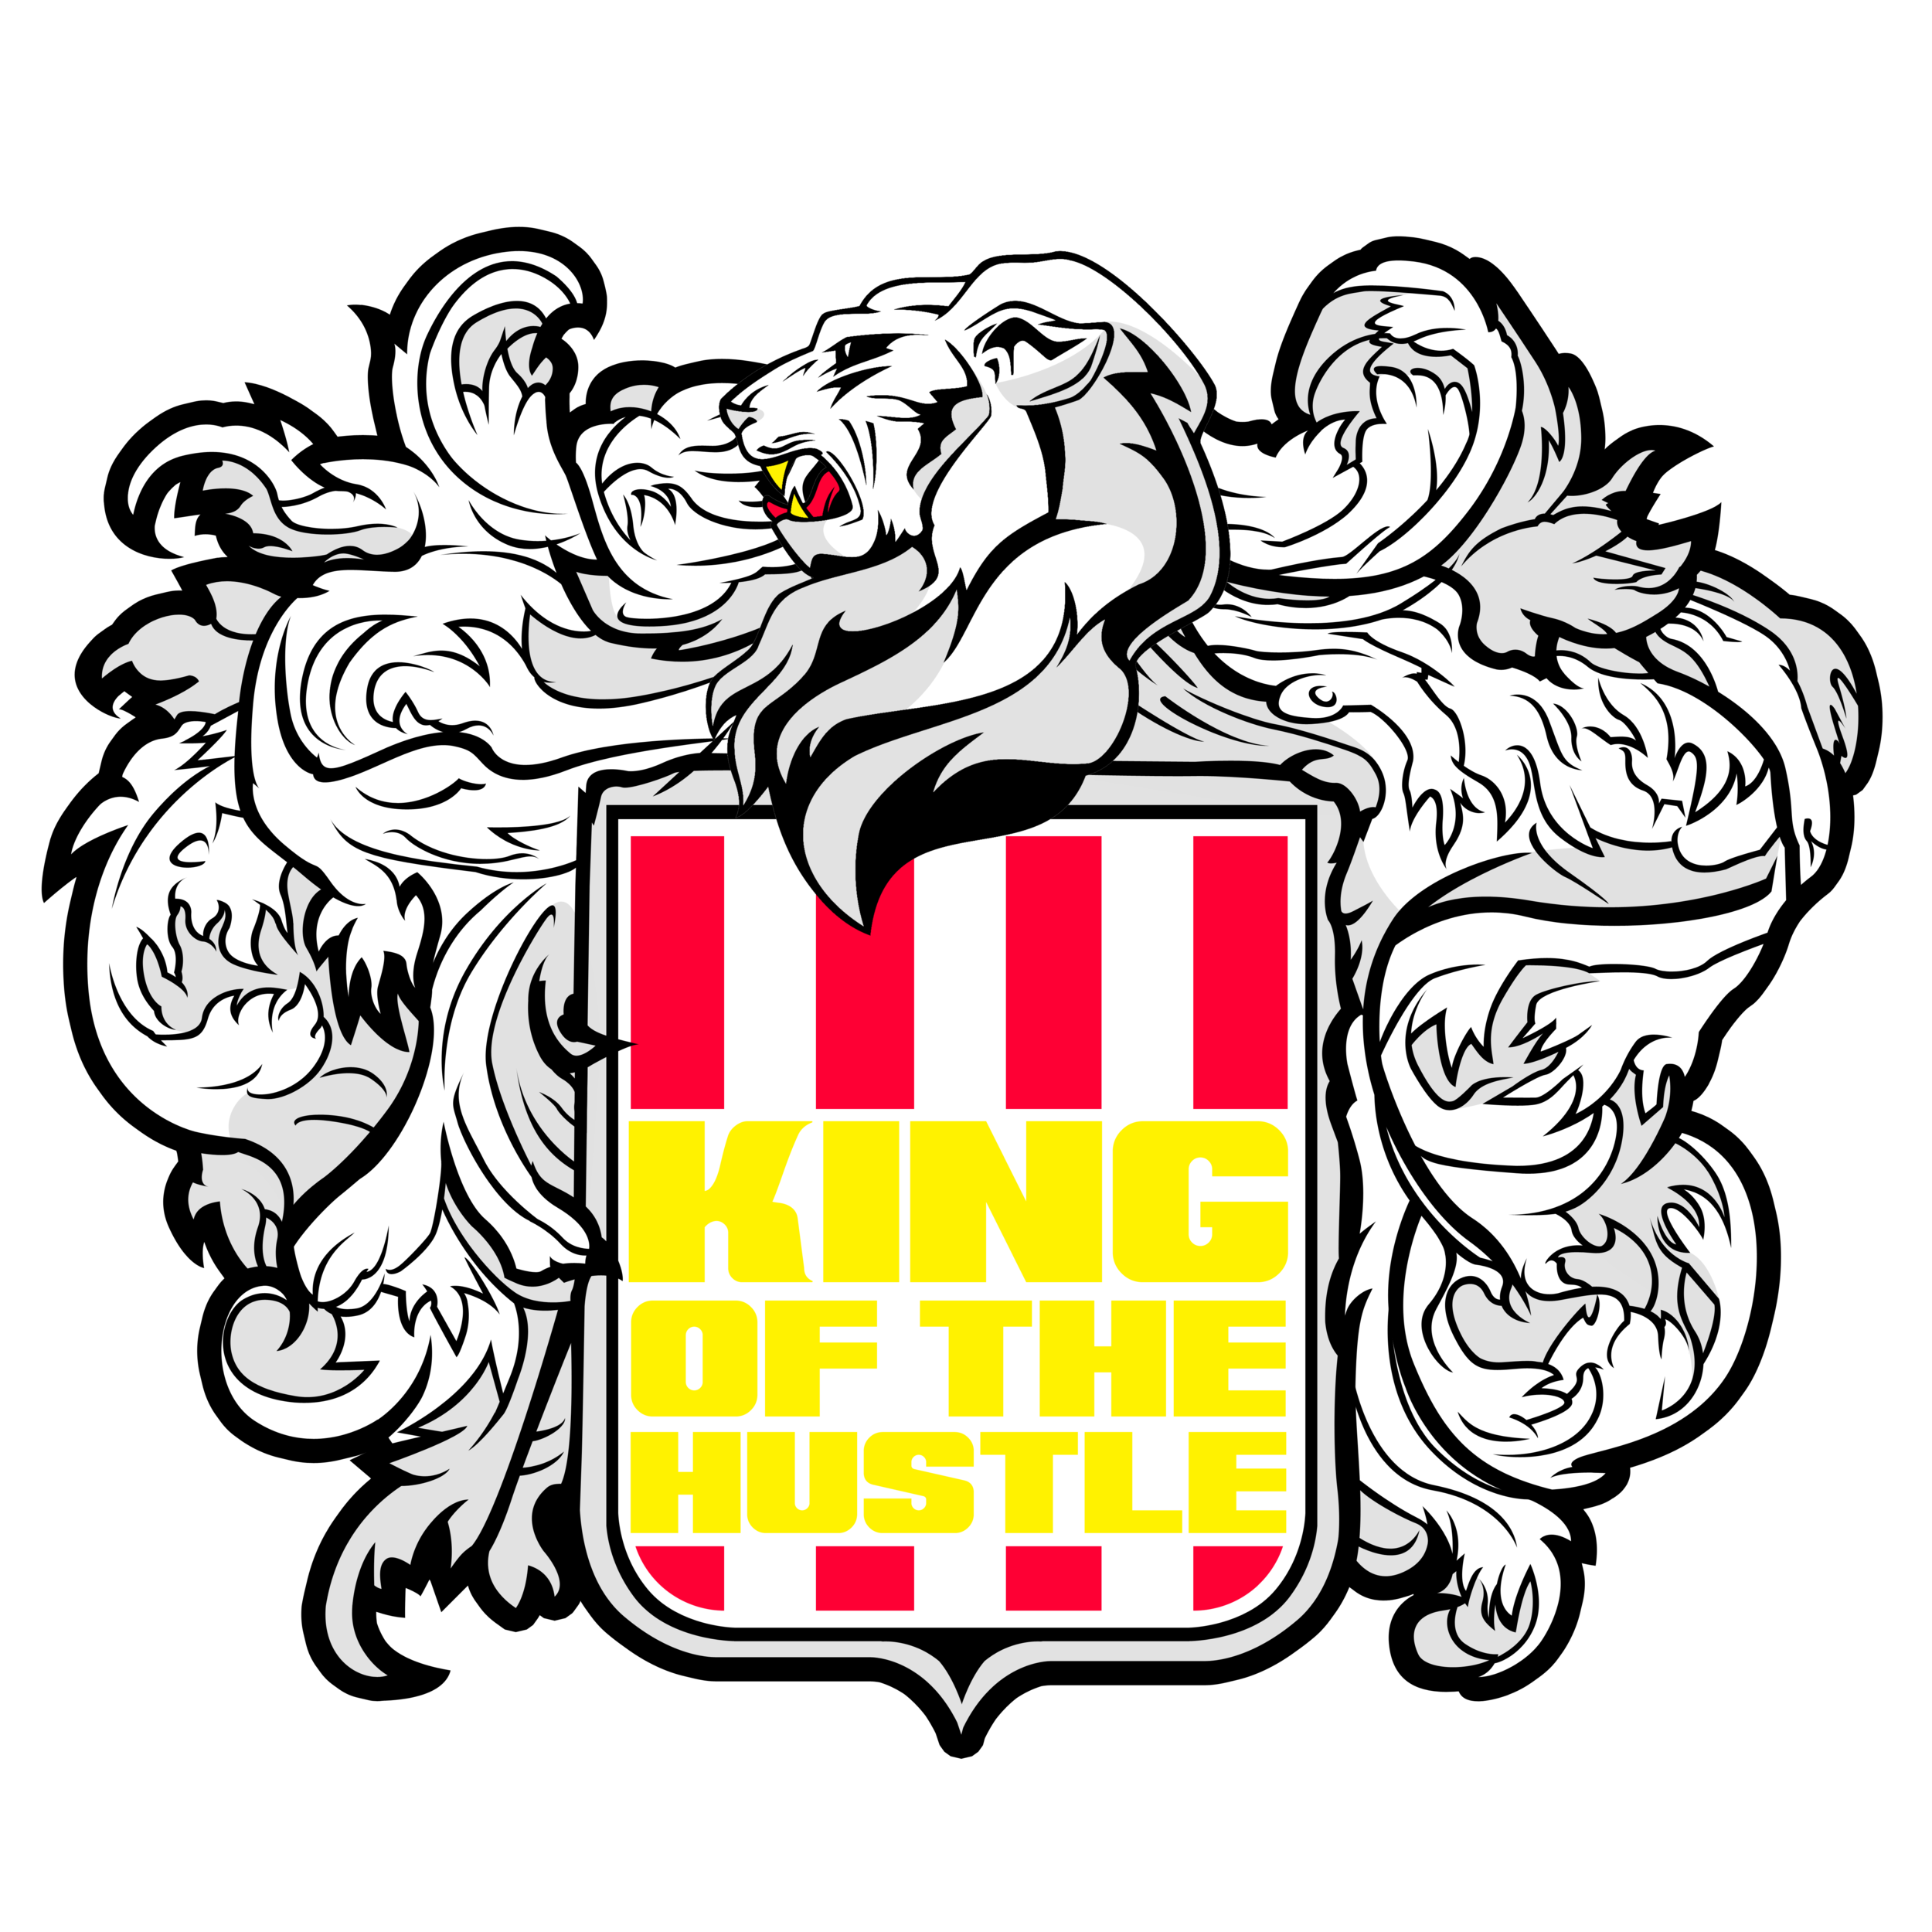 King of the Hustle